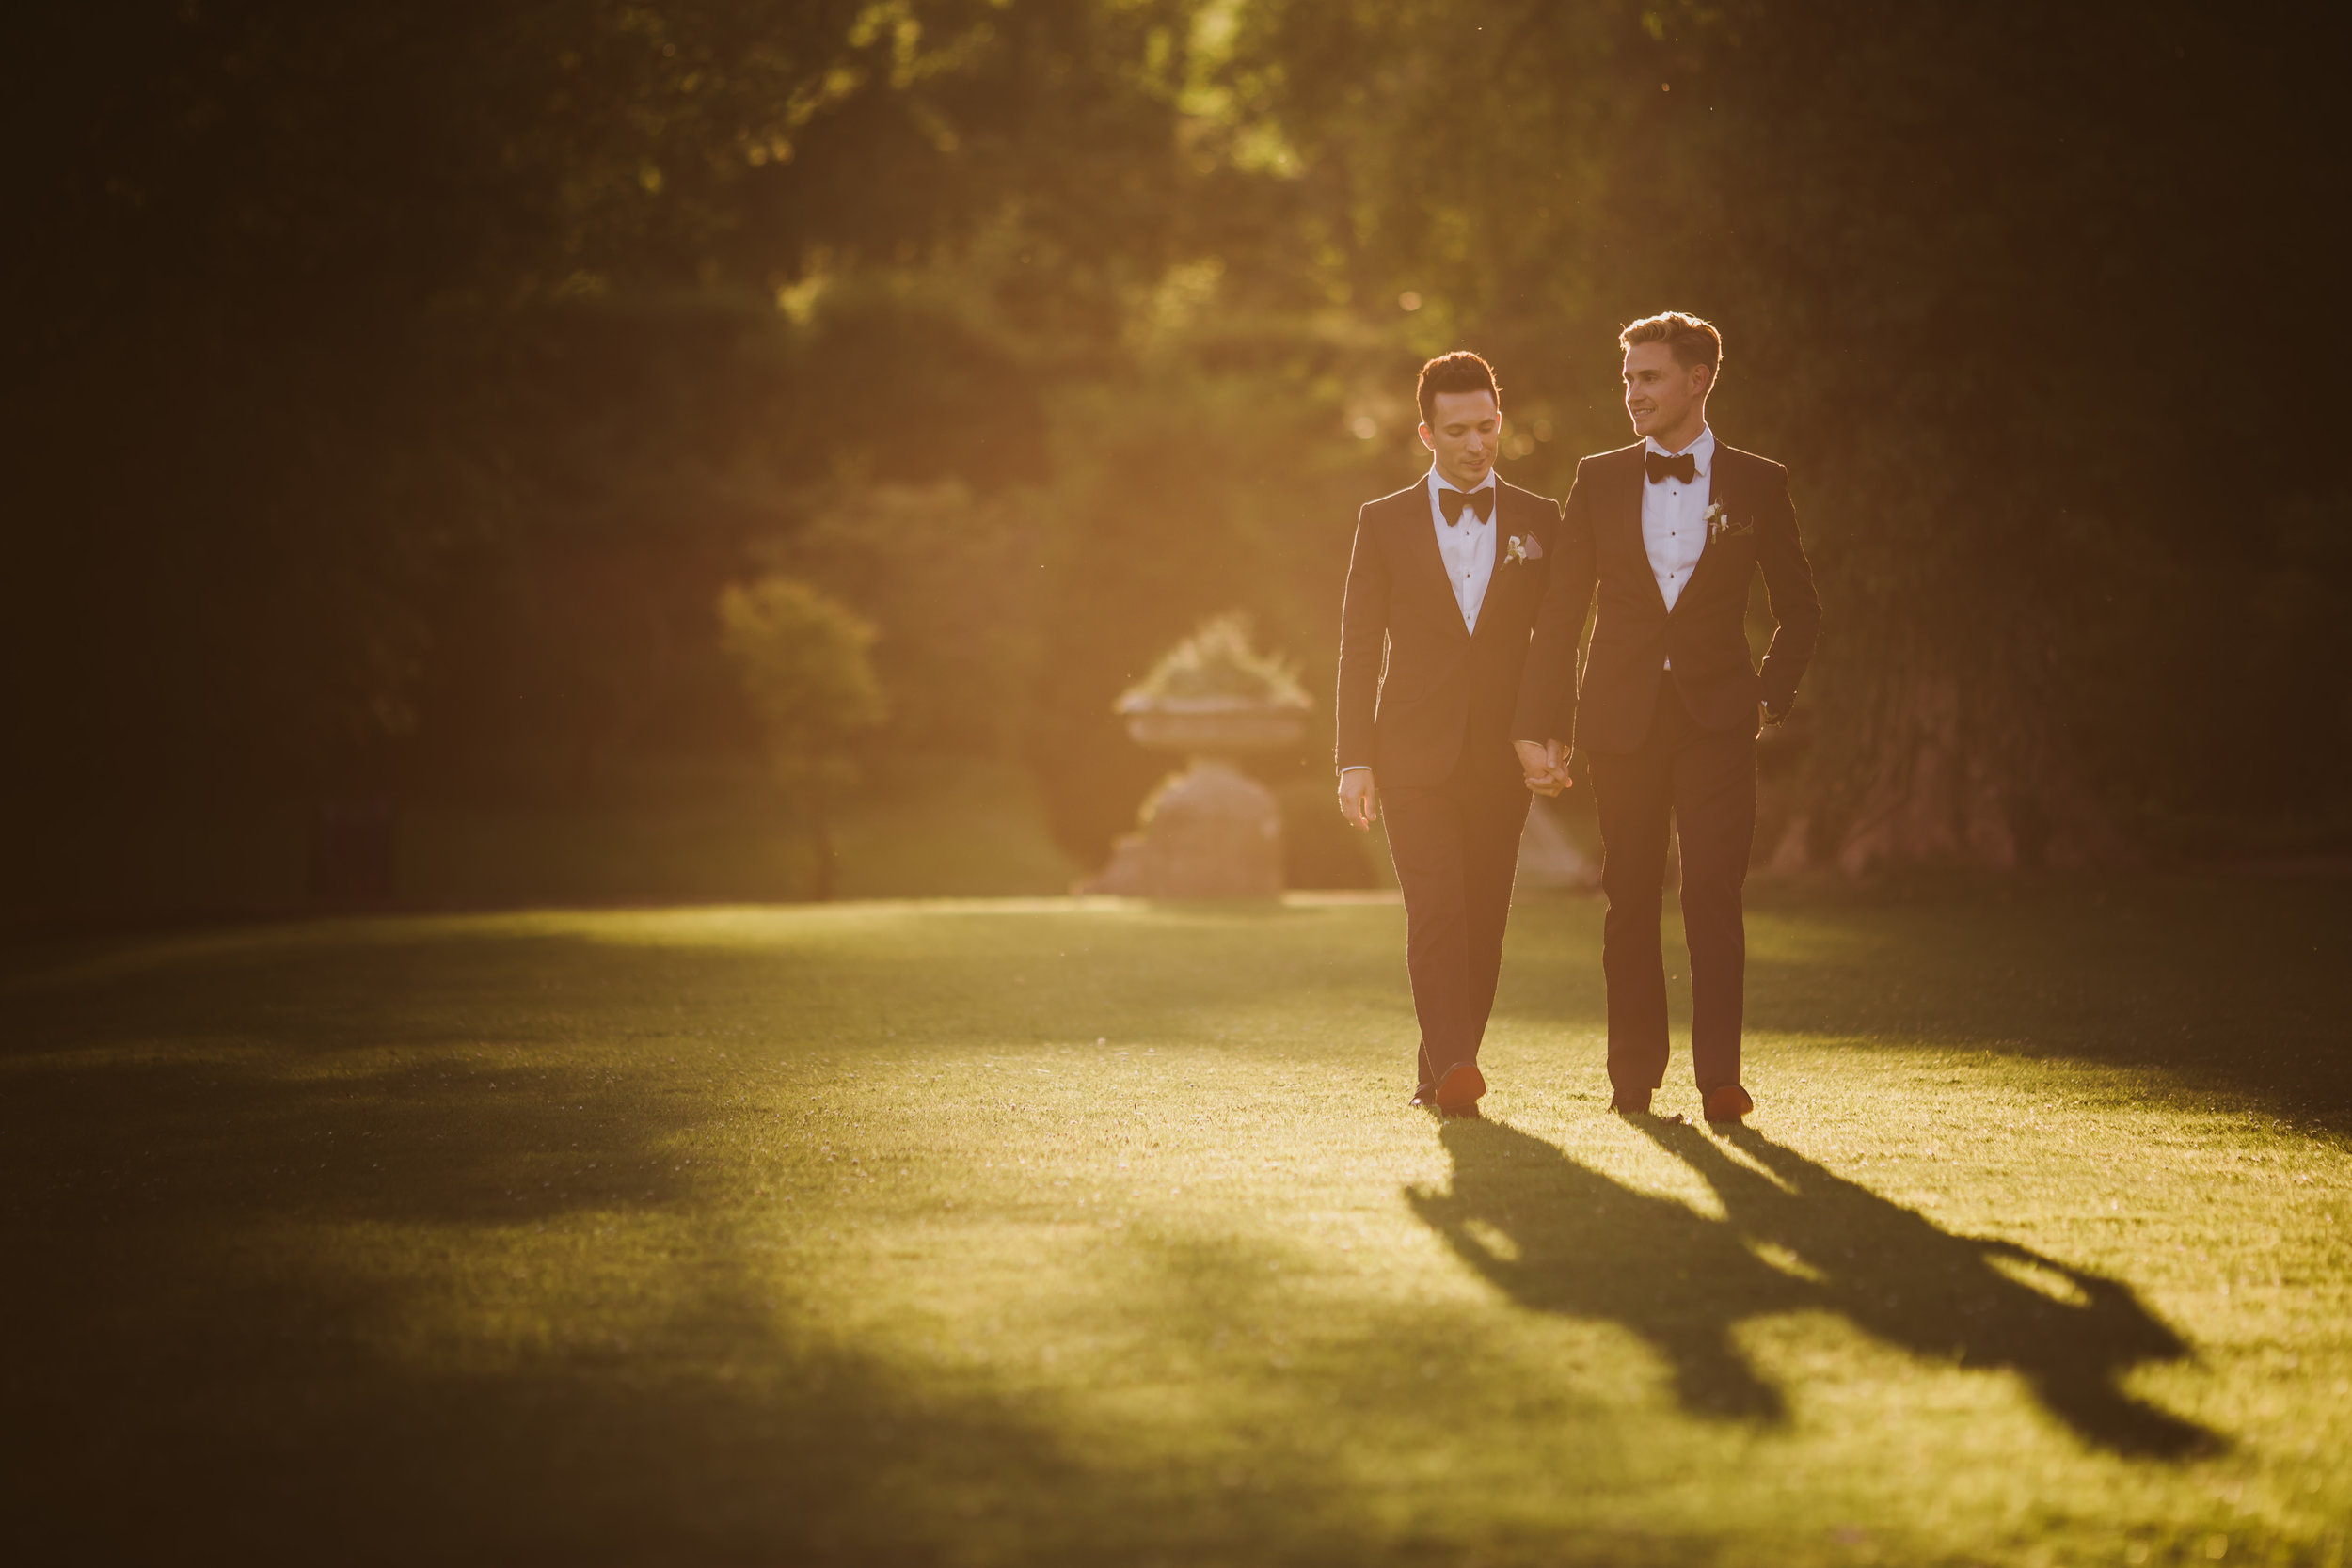 mr-theodore_same-sex-wedding33.jpg